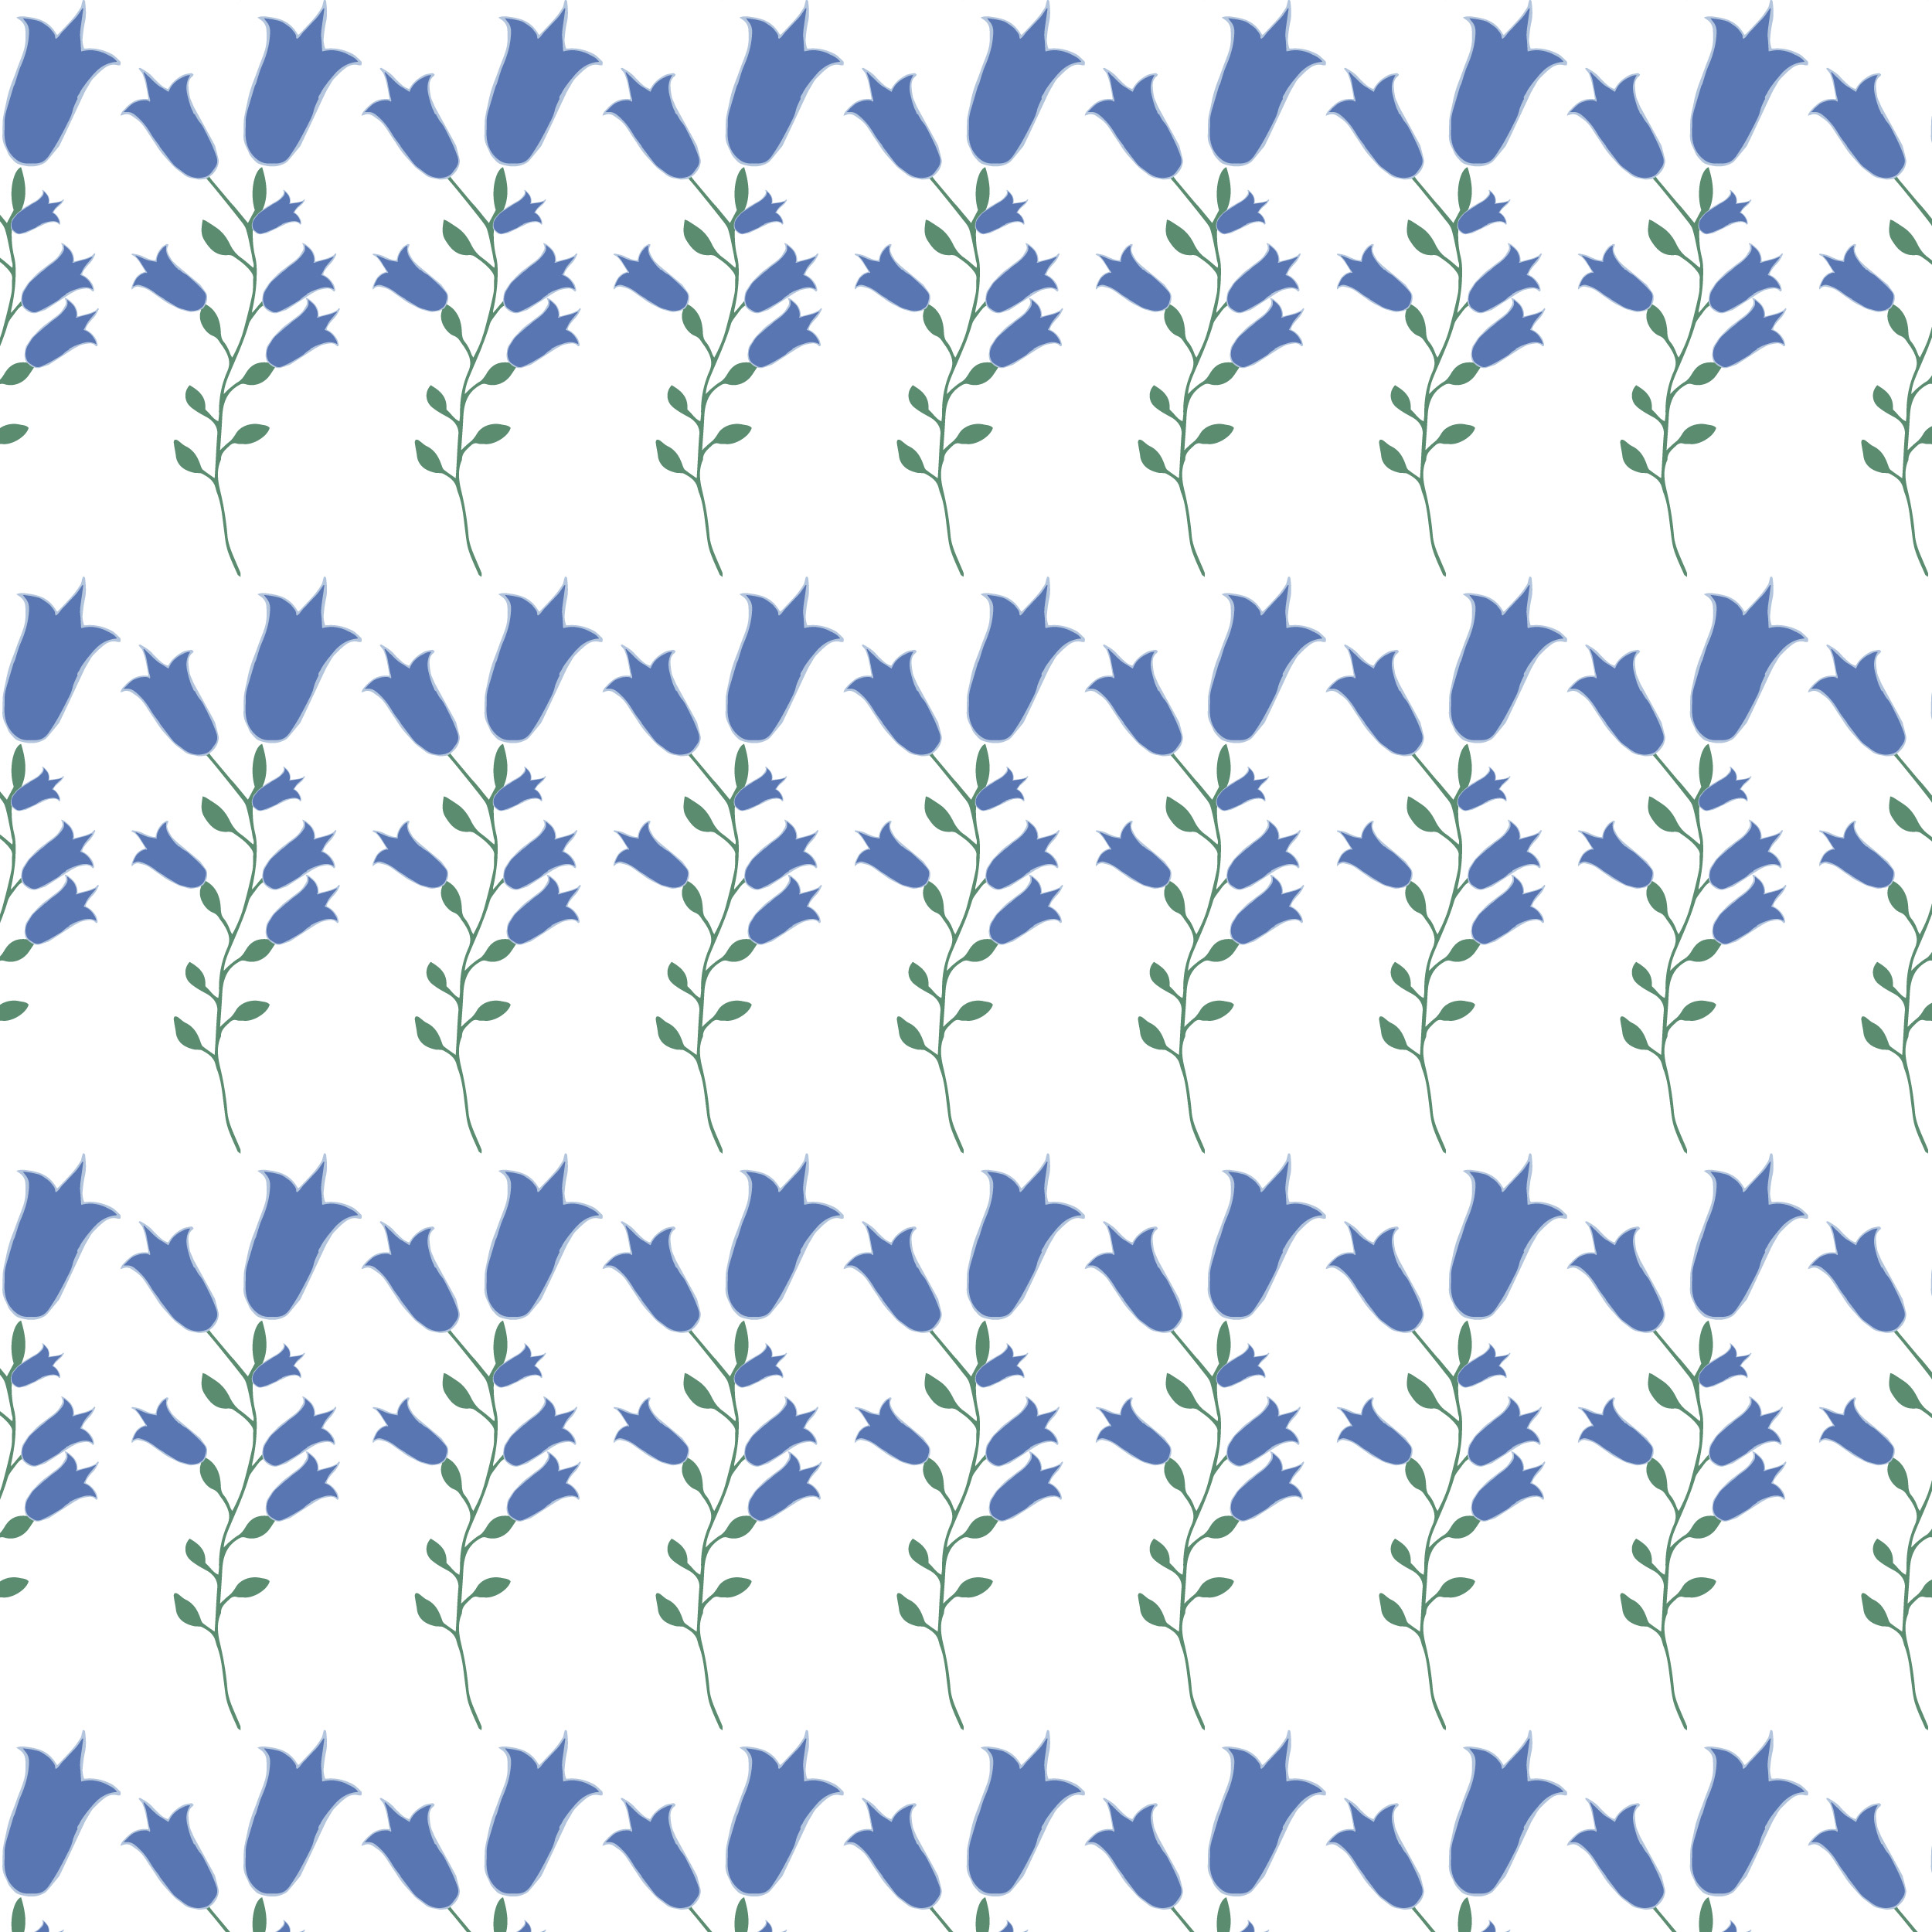 8 Spring Patterns example image 5